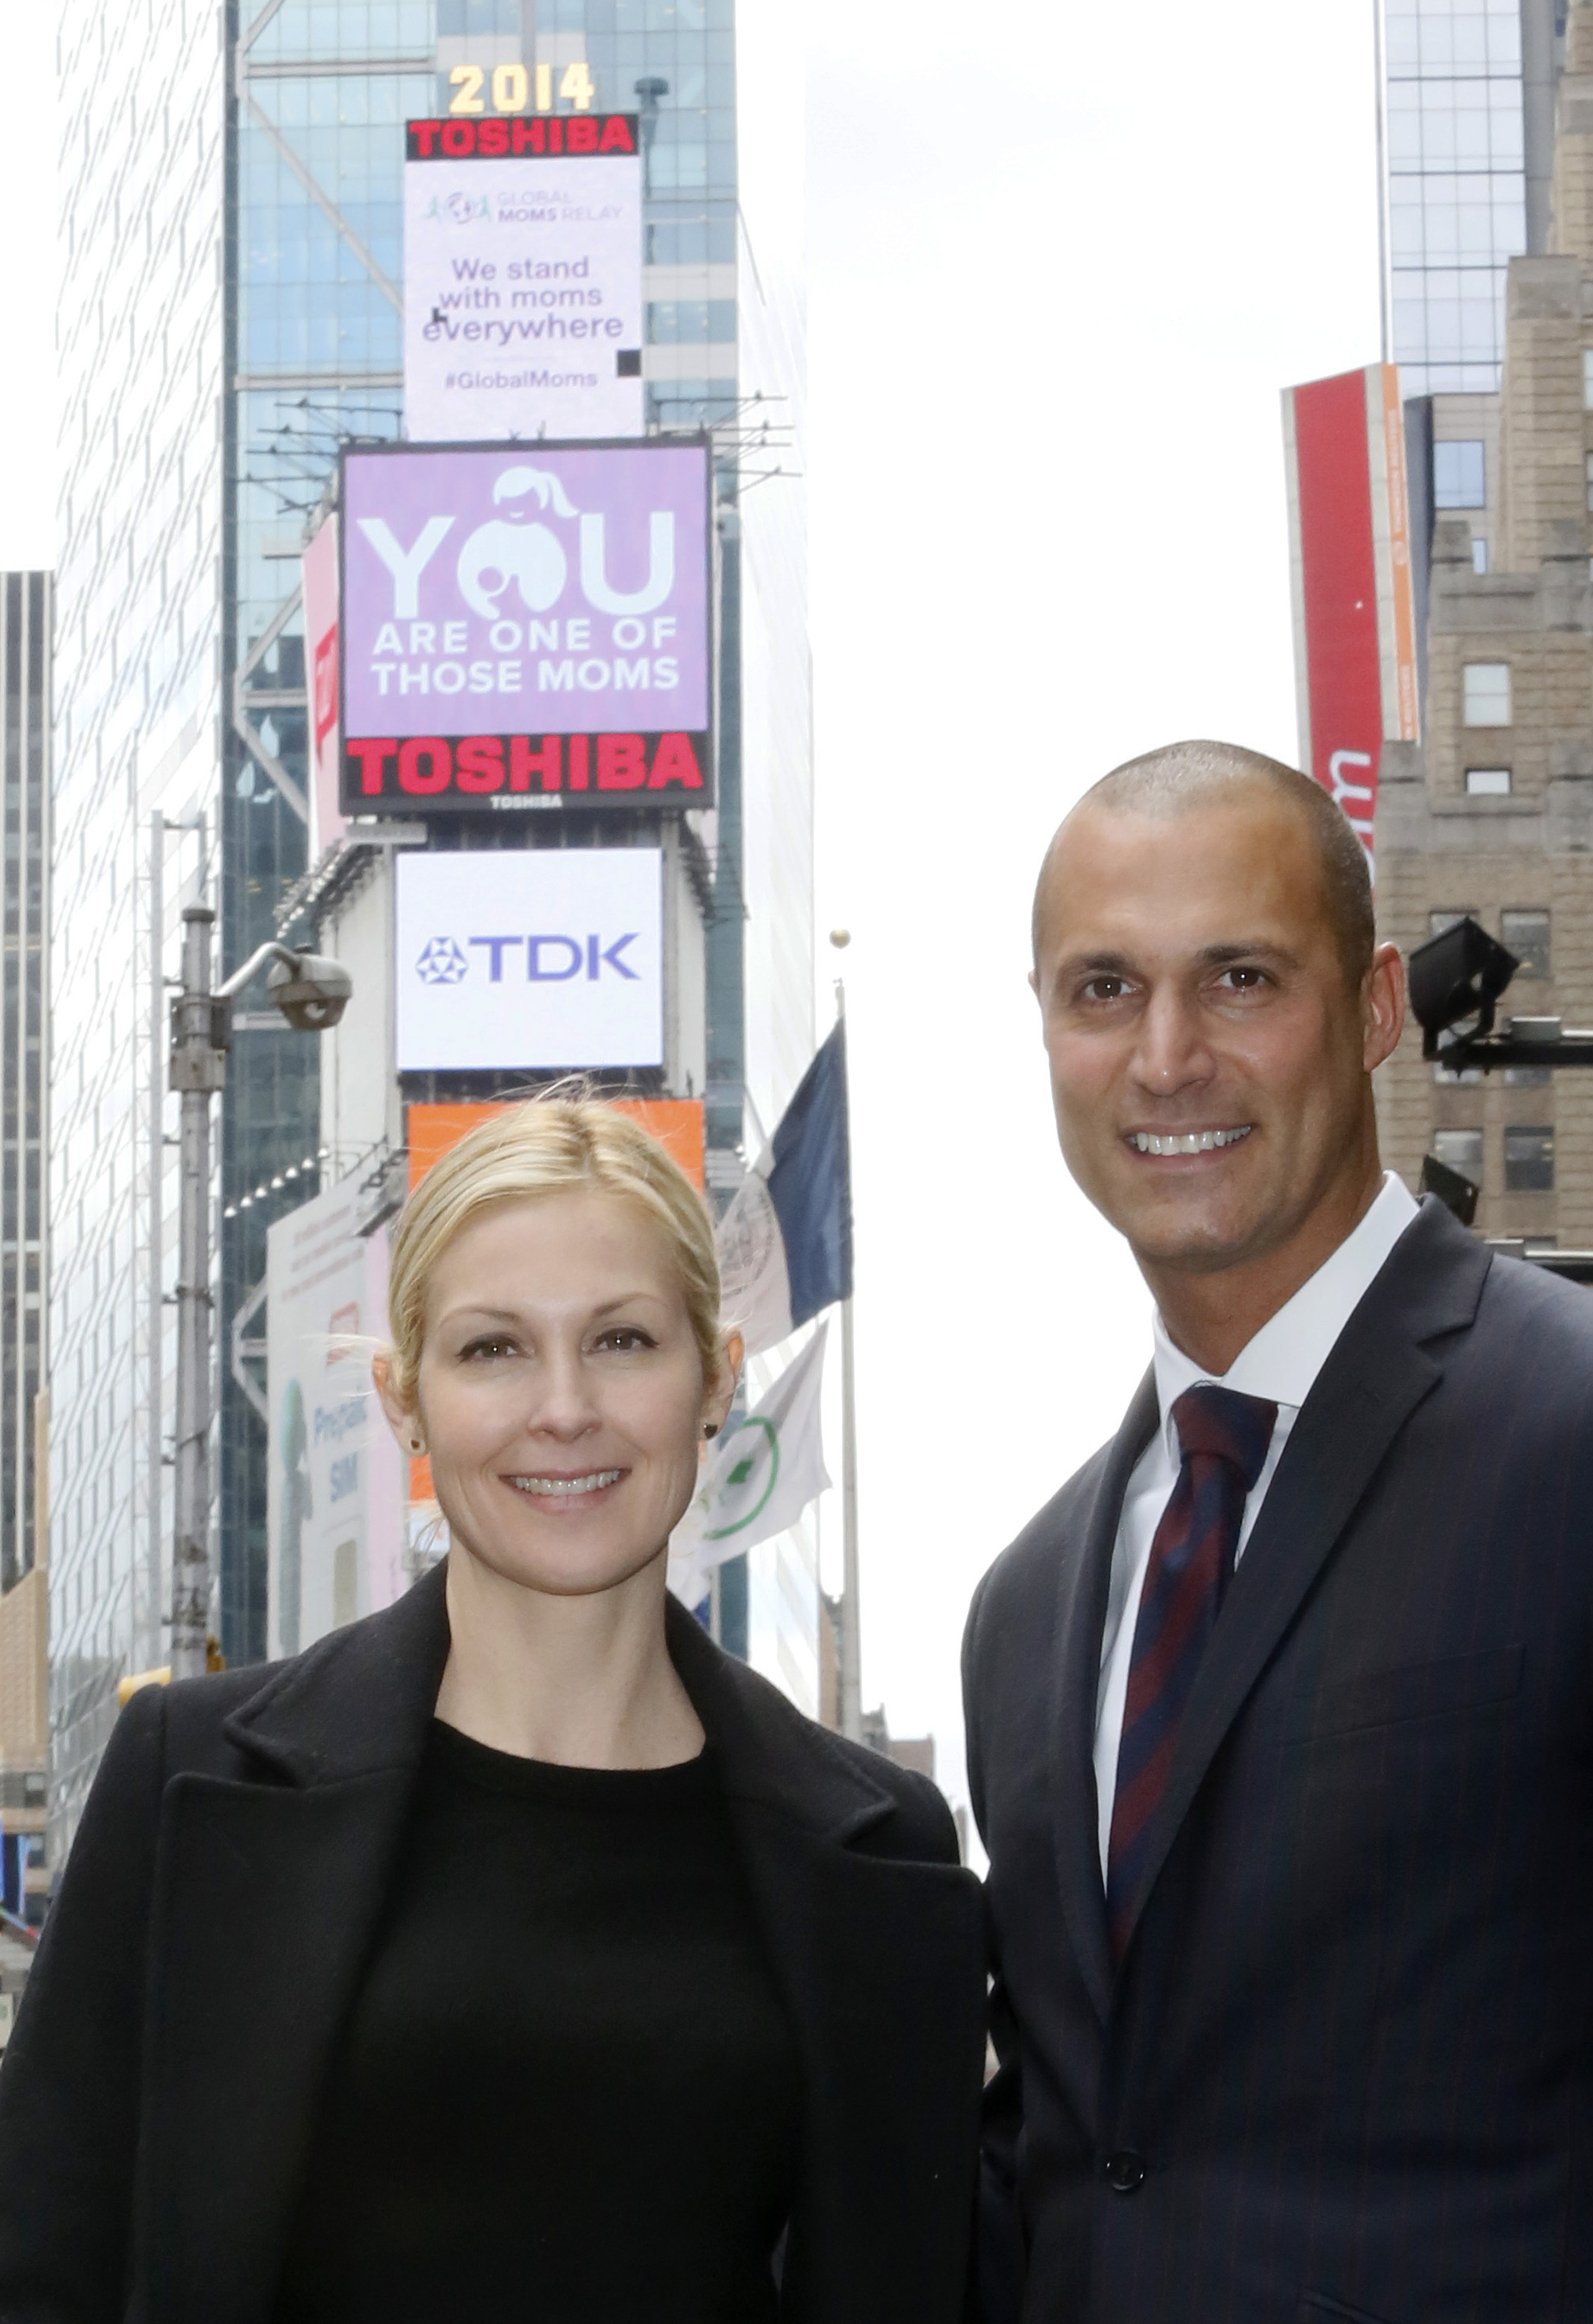 Kelly Rutherford & Nigel Barker launch Global Moms Relay in NYC